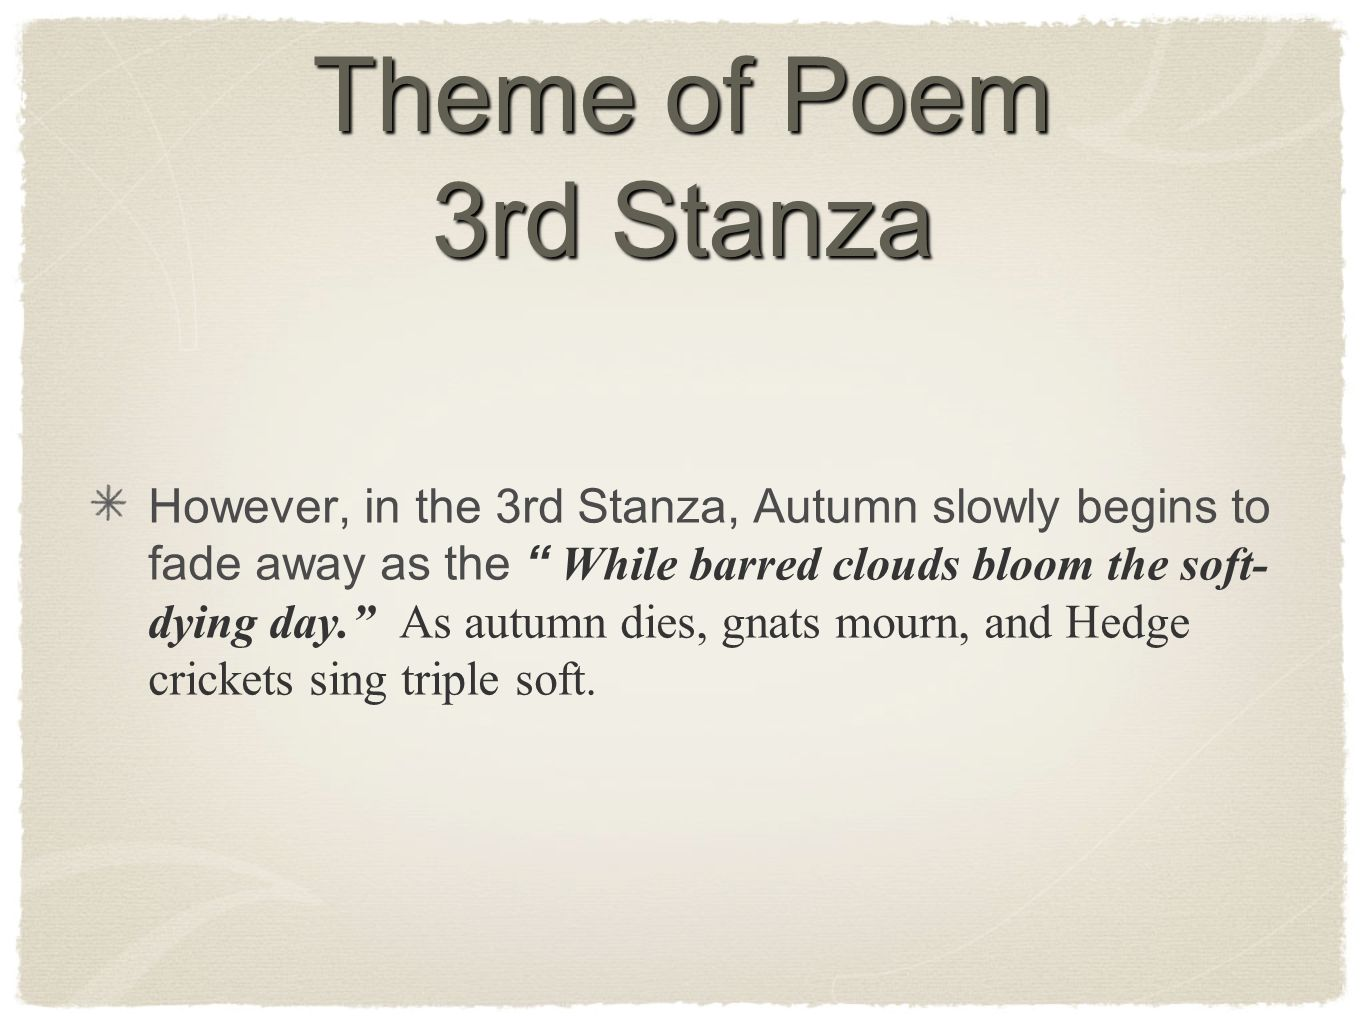 Theme of Poem 3rd Stanza